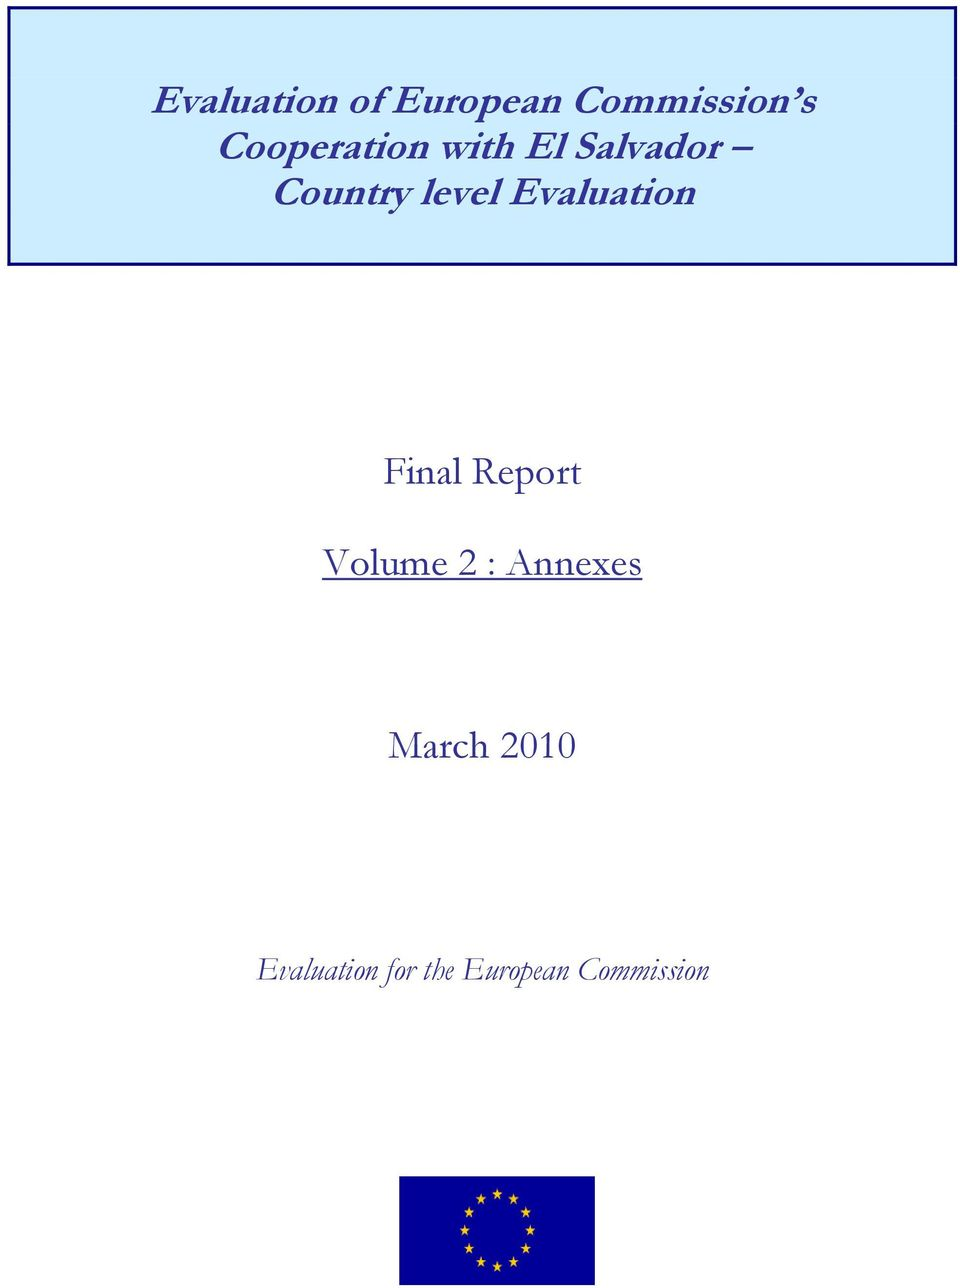 Evaluation Final Report Volume 2 : Annexes